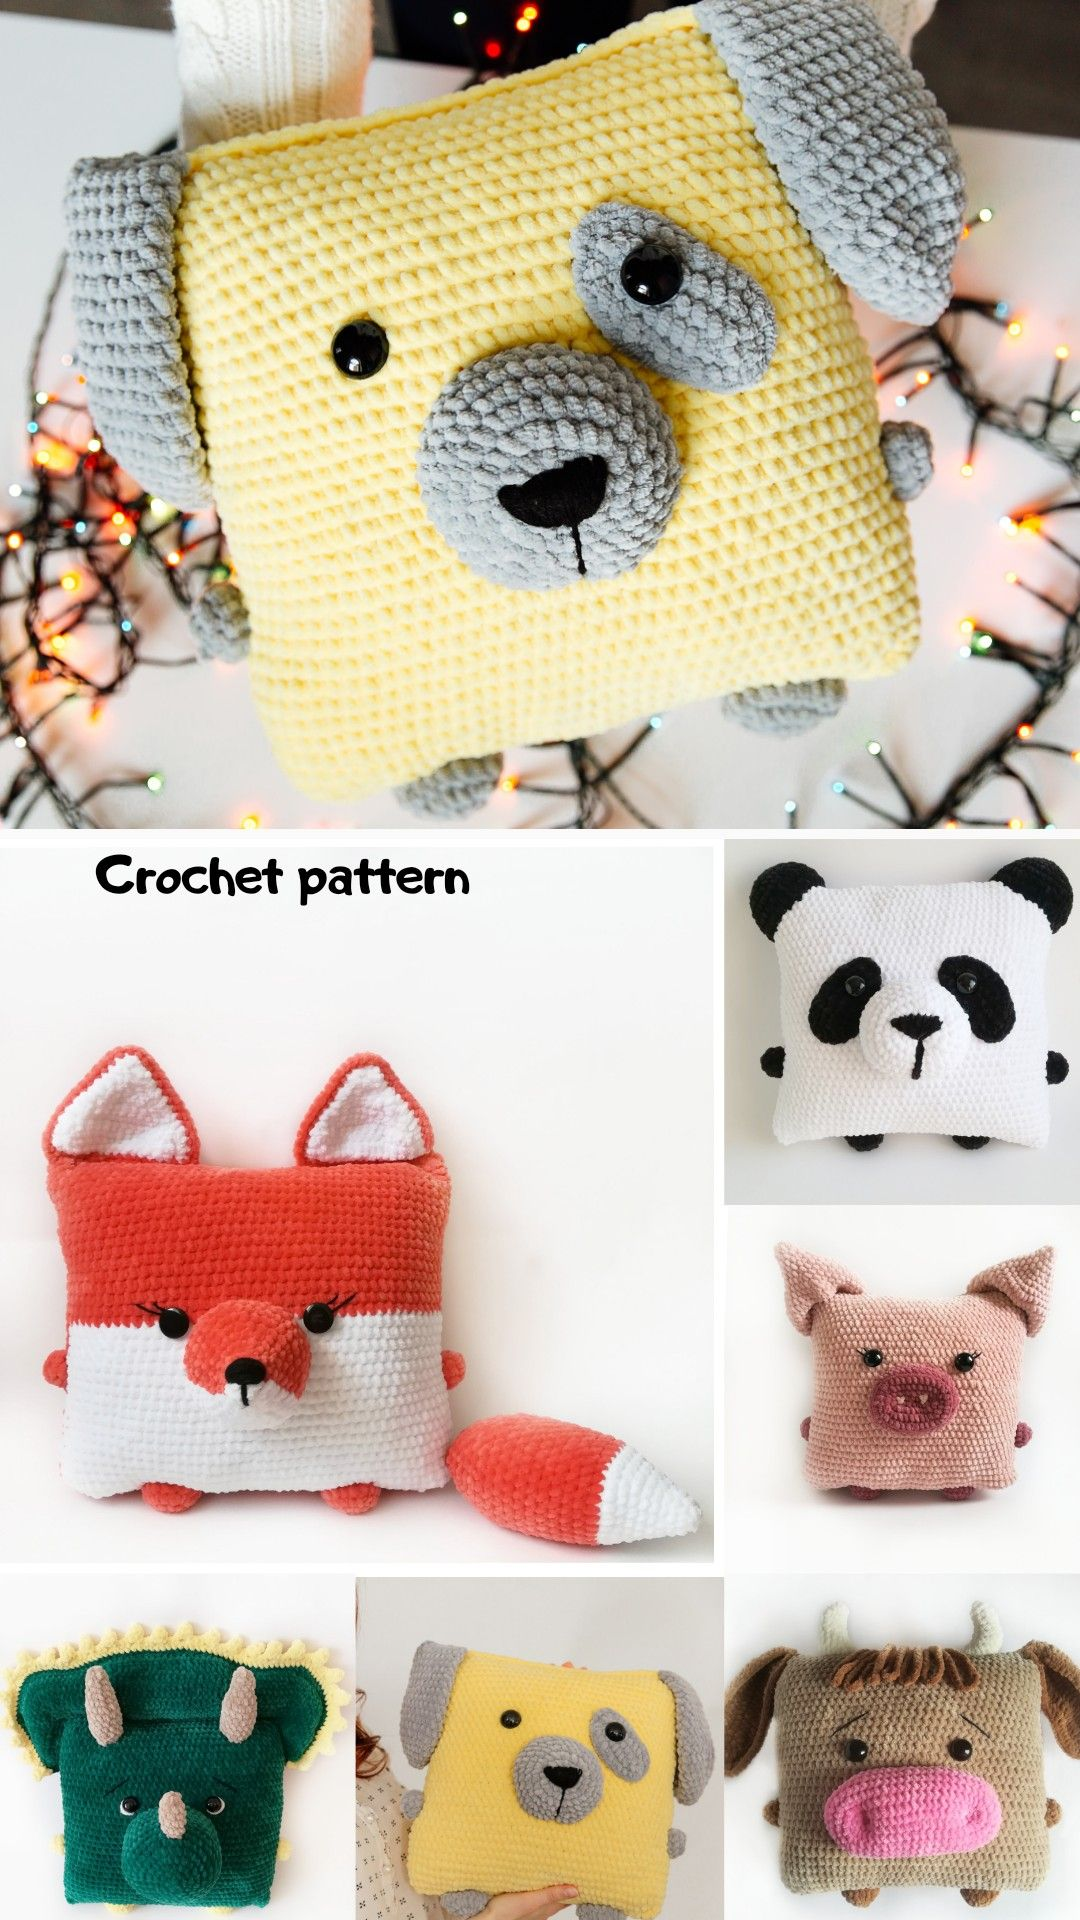 Crochet pillow pattern, crochet fox, amigurumi dog pattern, amigurumi bull, amigurumi pattern pillow